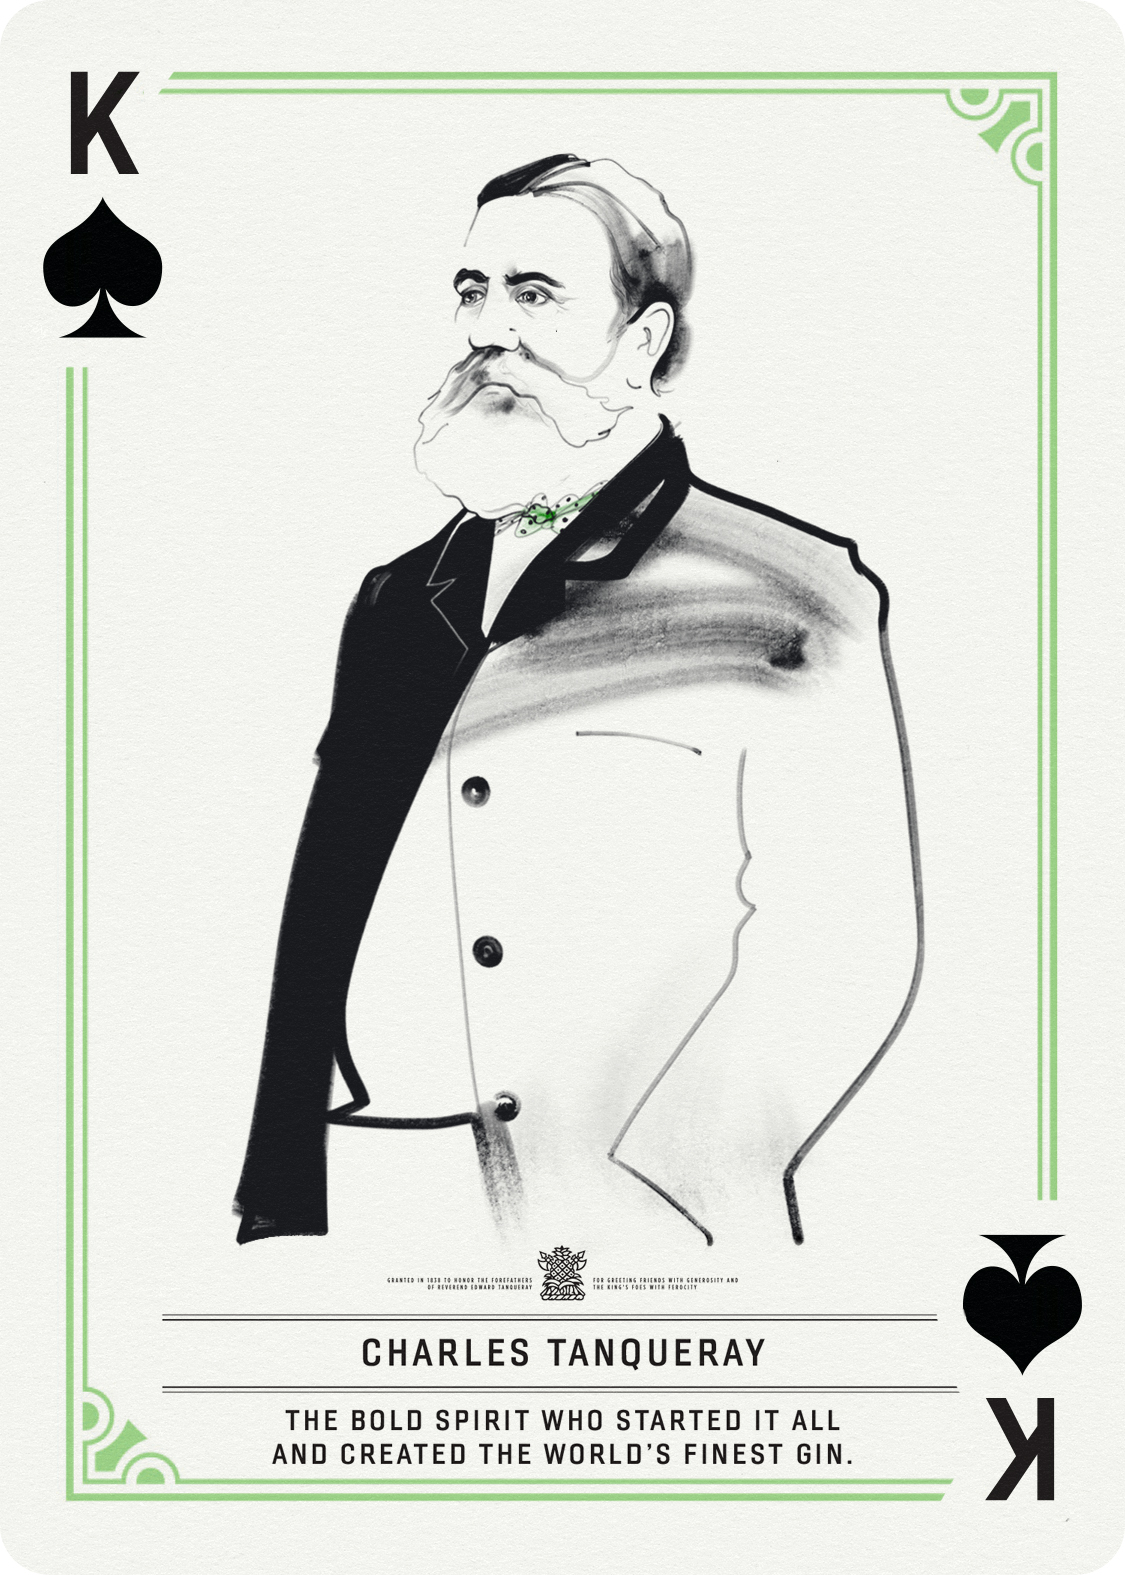 King of Spades / Charles Tanqueray